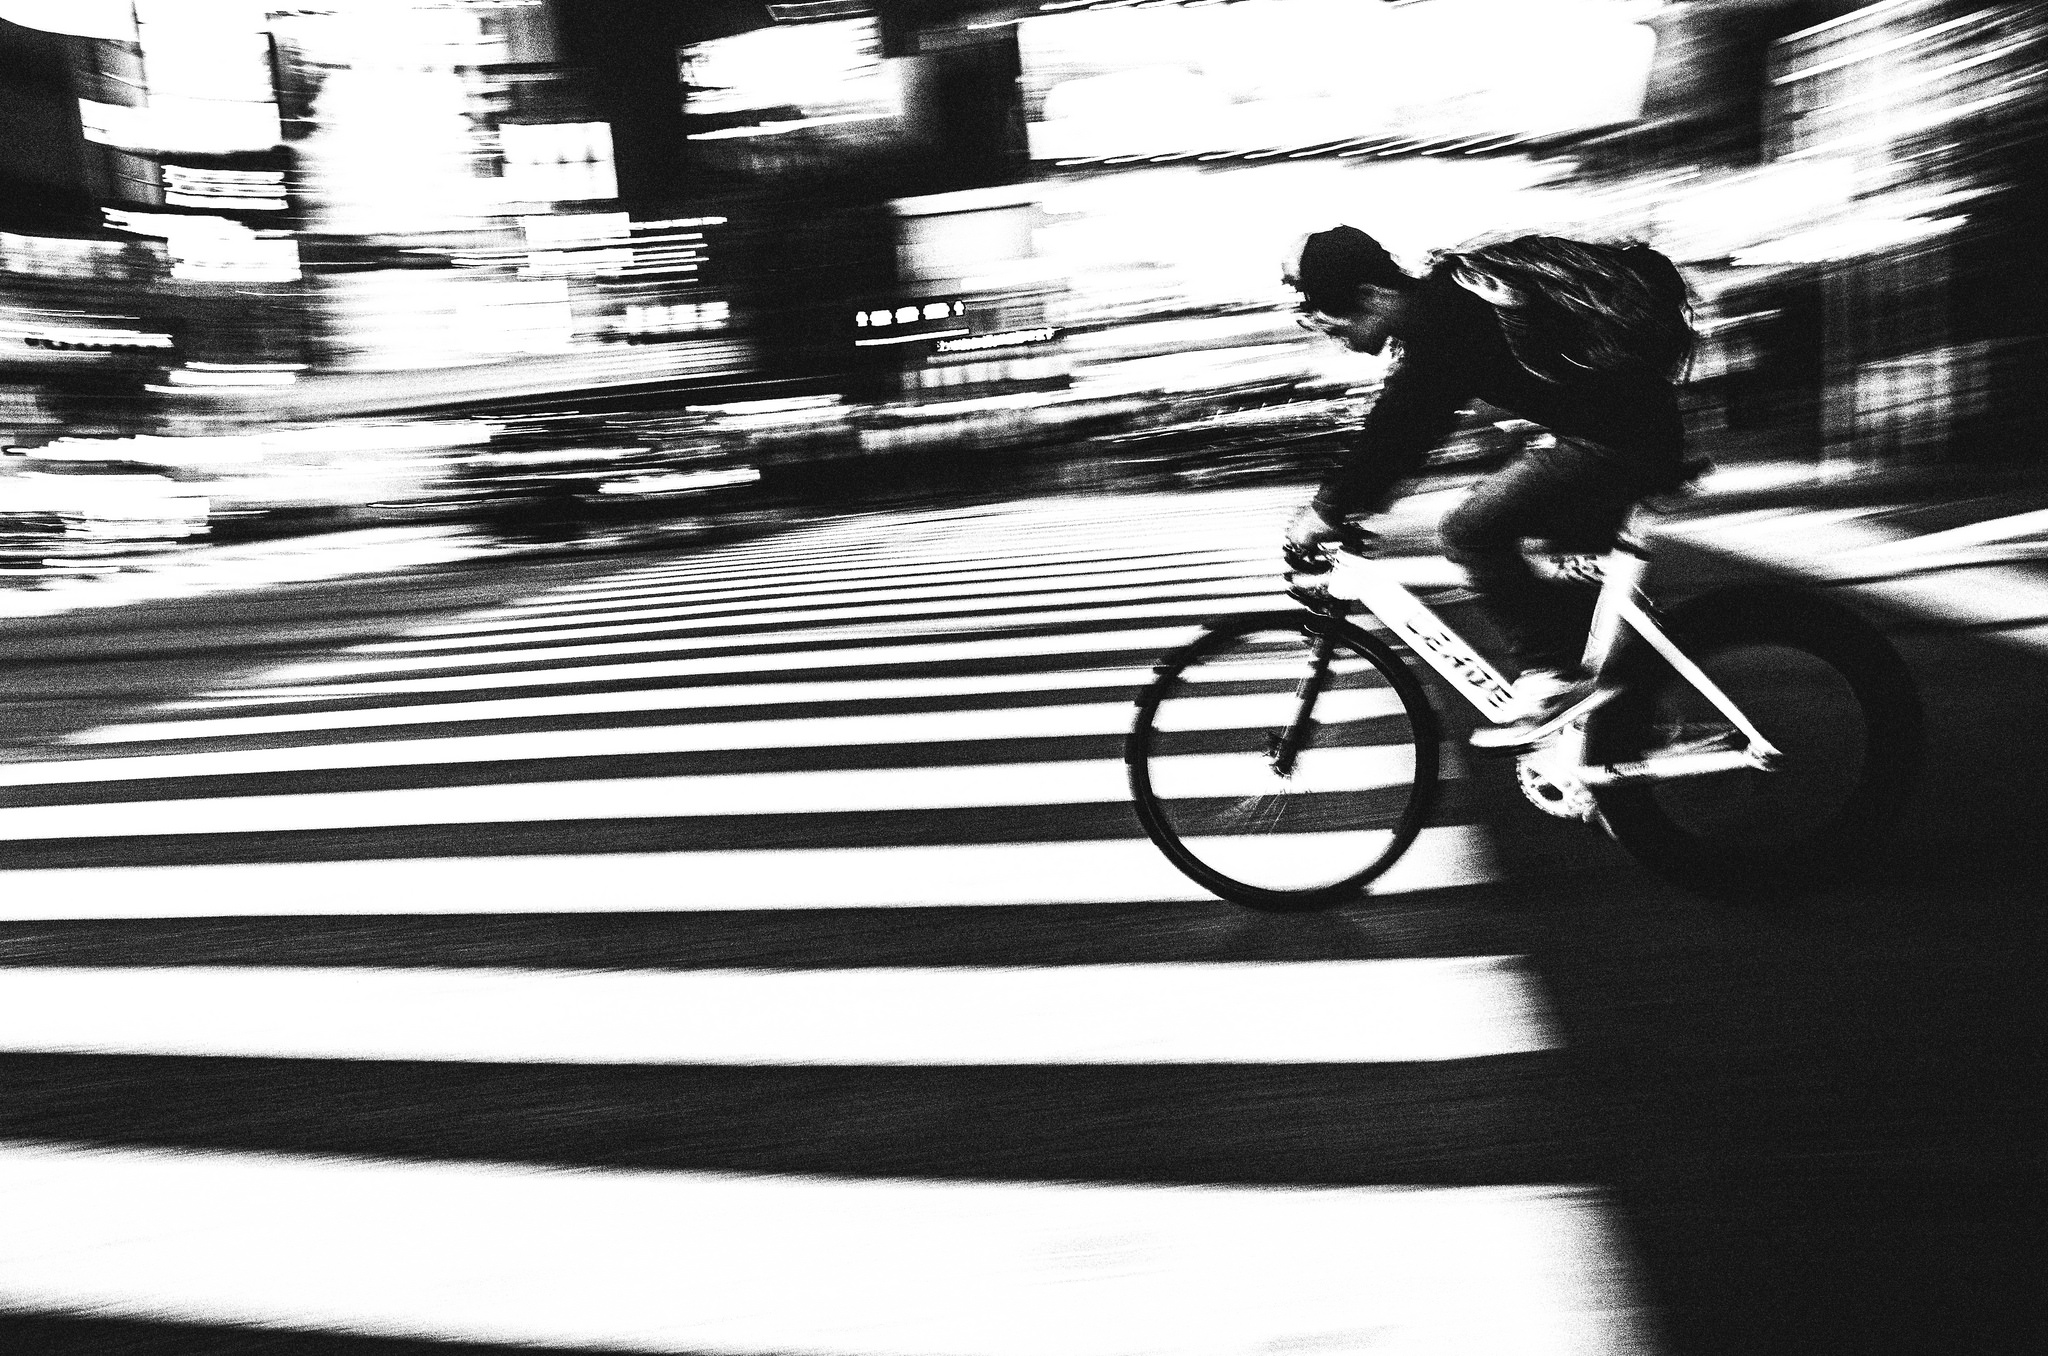 Shibuya: April, 2016 (Black and white)